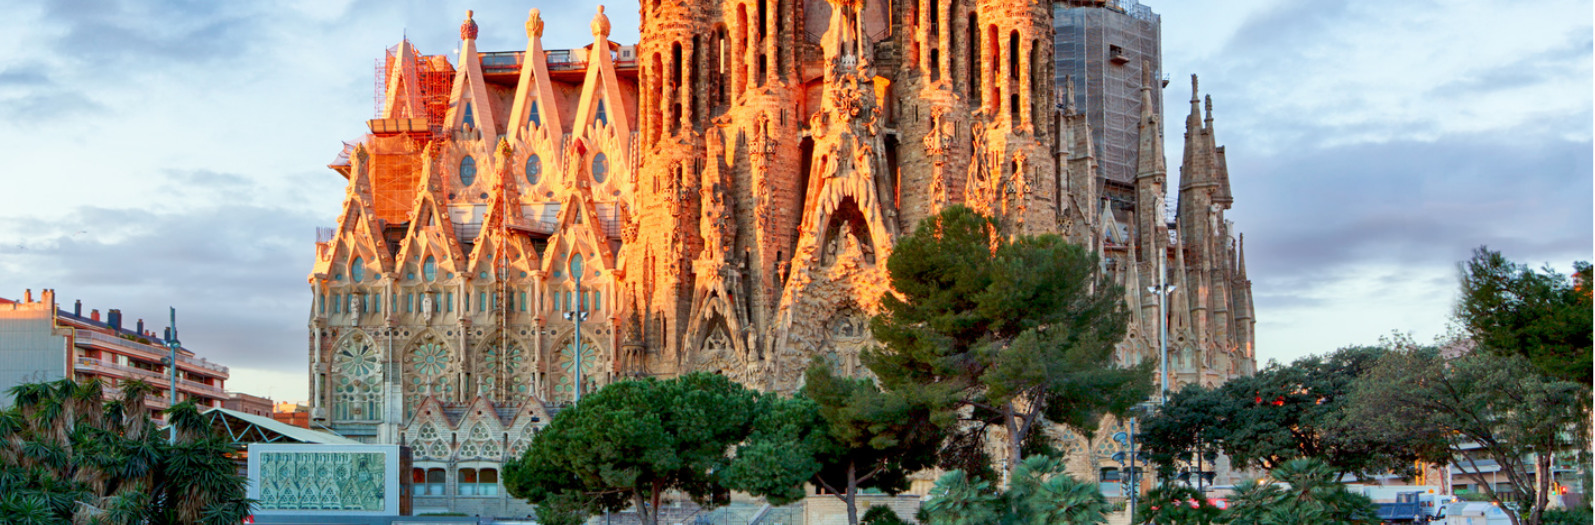 Sagrada Familia Adarve Travel